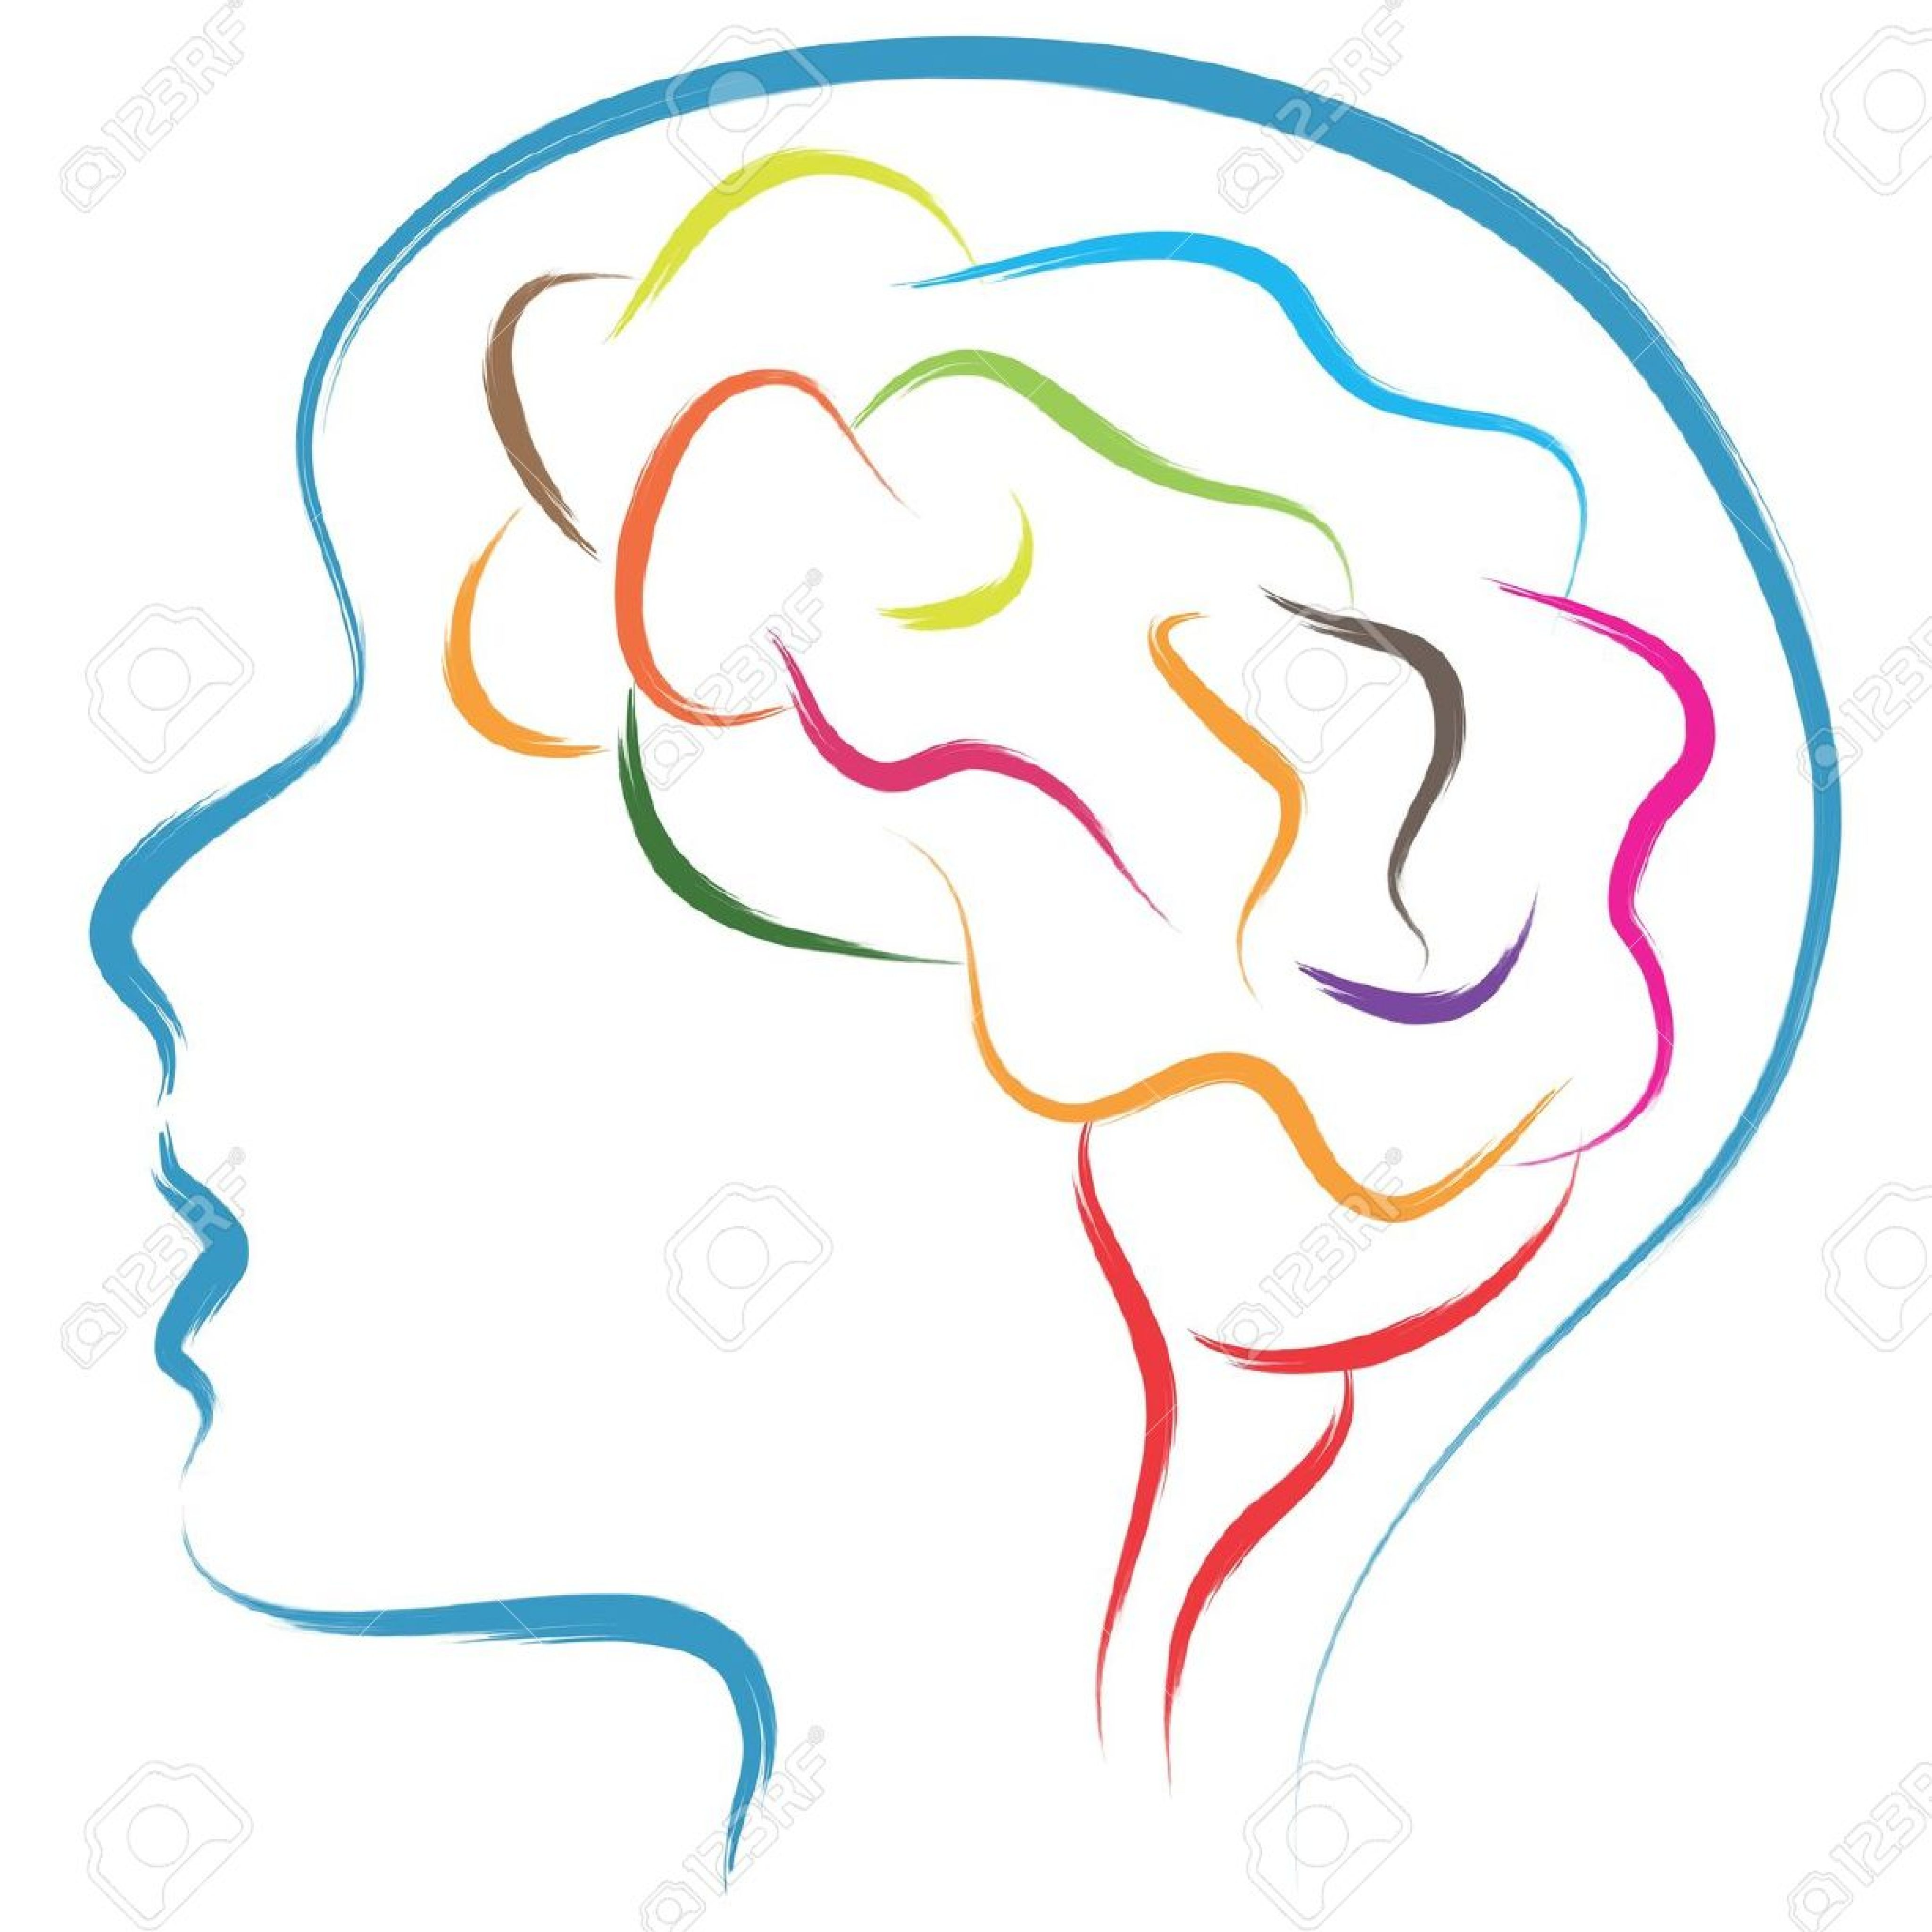 free-clipart-images-clipartwork-child-brain-clipart_1226-1300